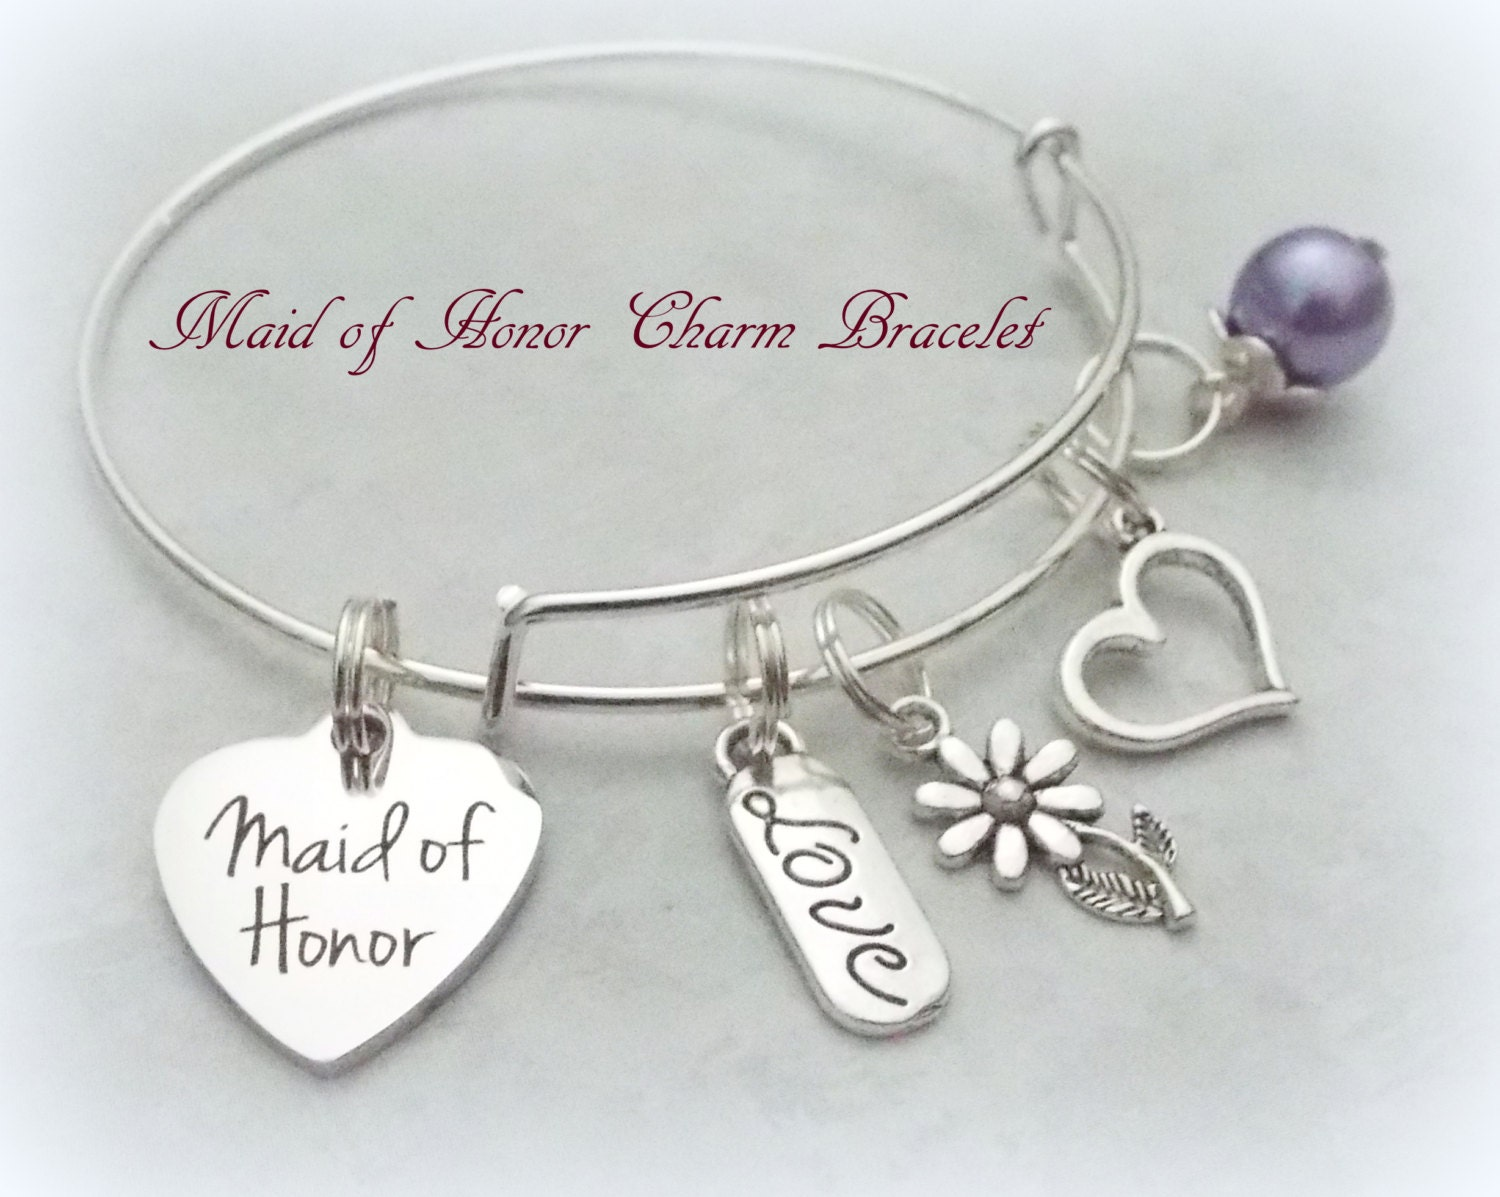 Maid Of Honor Gifts From Bride: Bride Gifts Maid Of Honor Gift Maid Of Honor Bracelet Gift